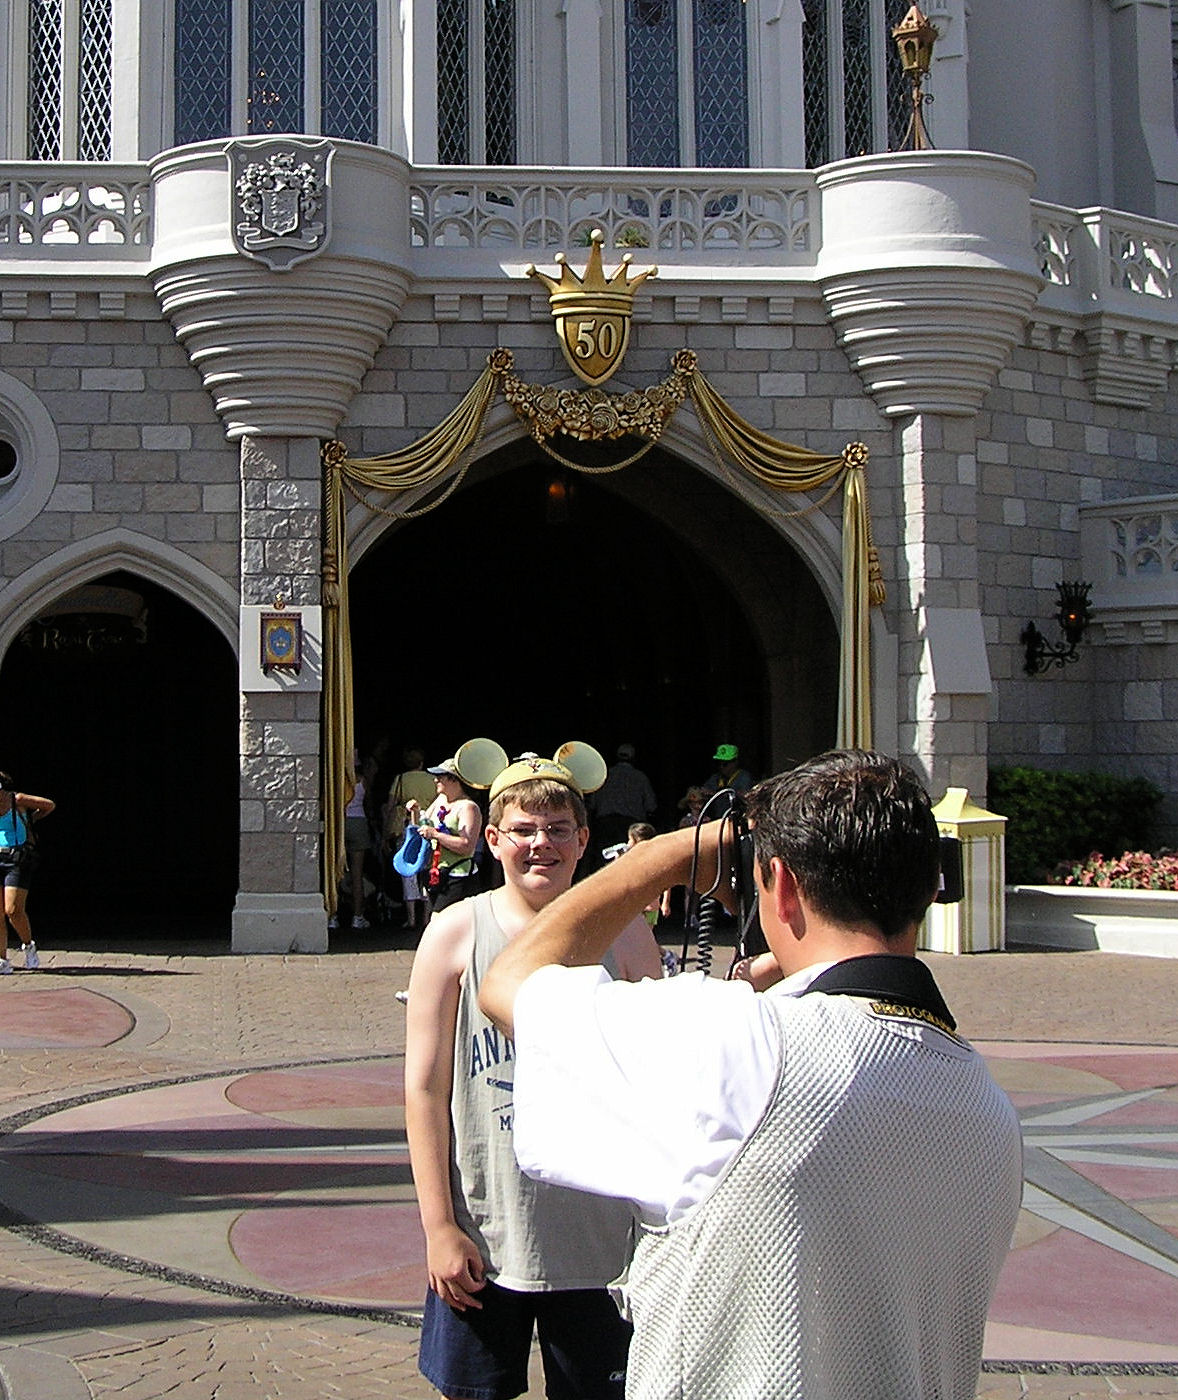 Me getting my picture taken behind Cinderella Castle with my golden Mickey Ears on at Disney World.